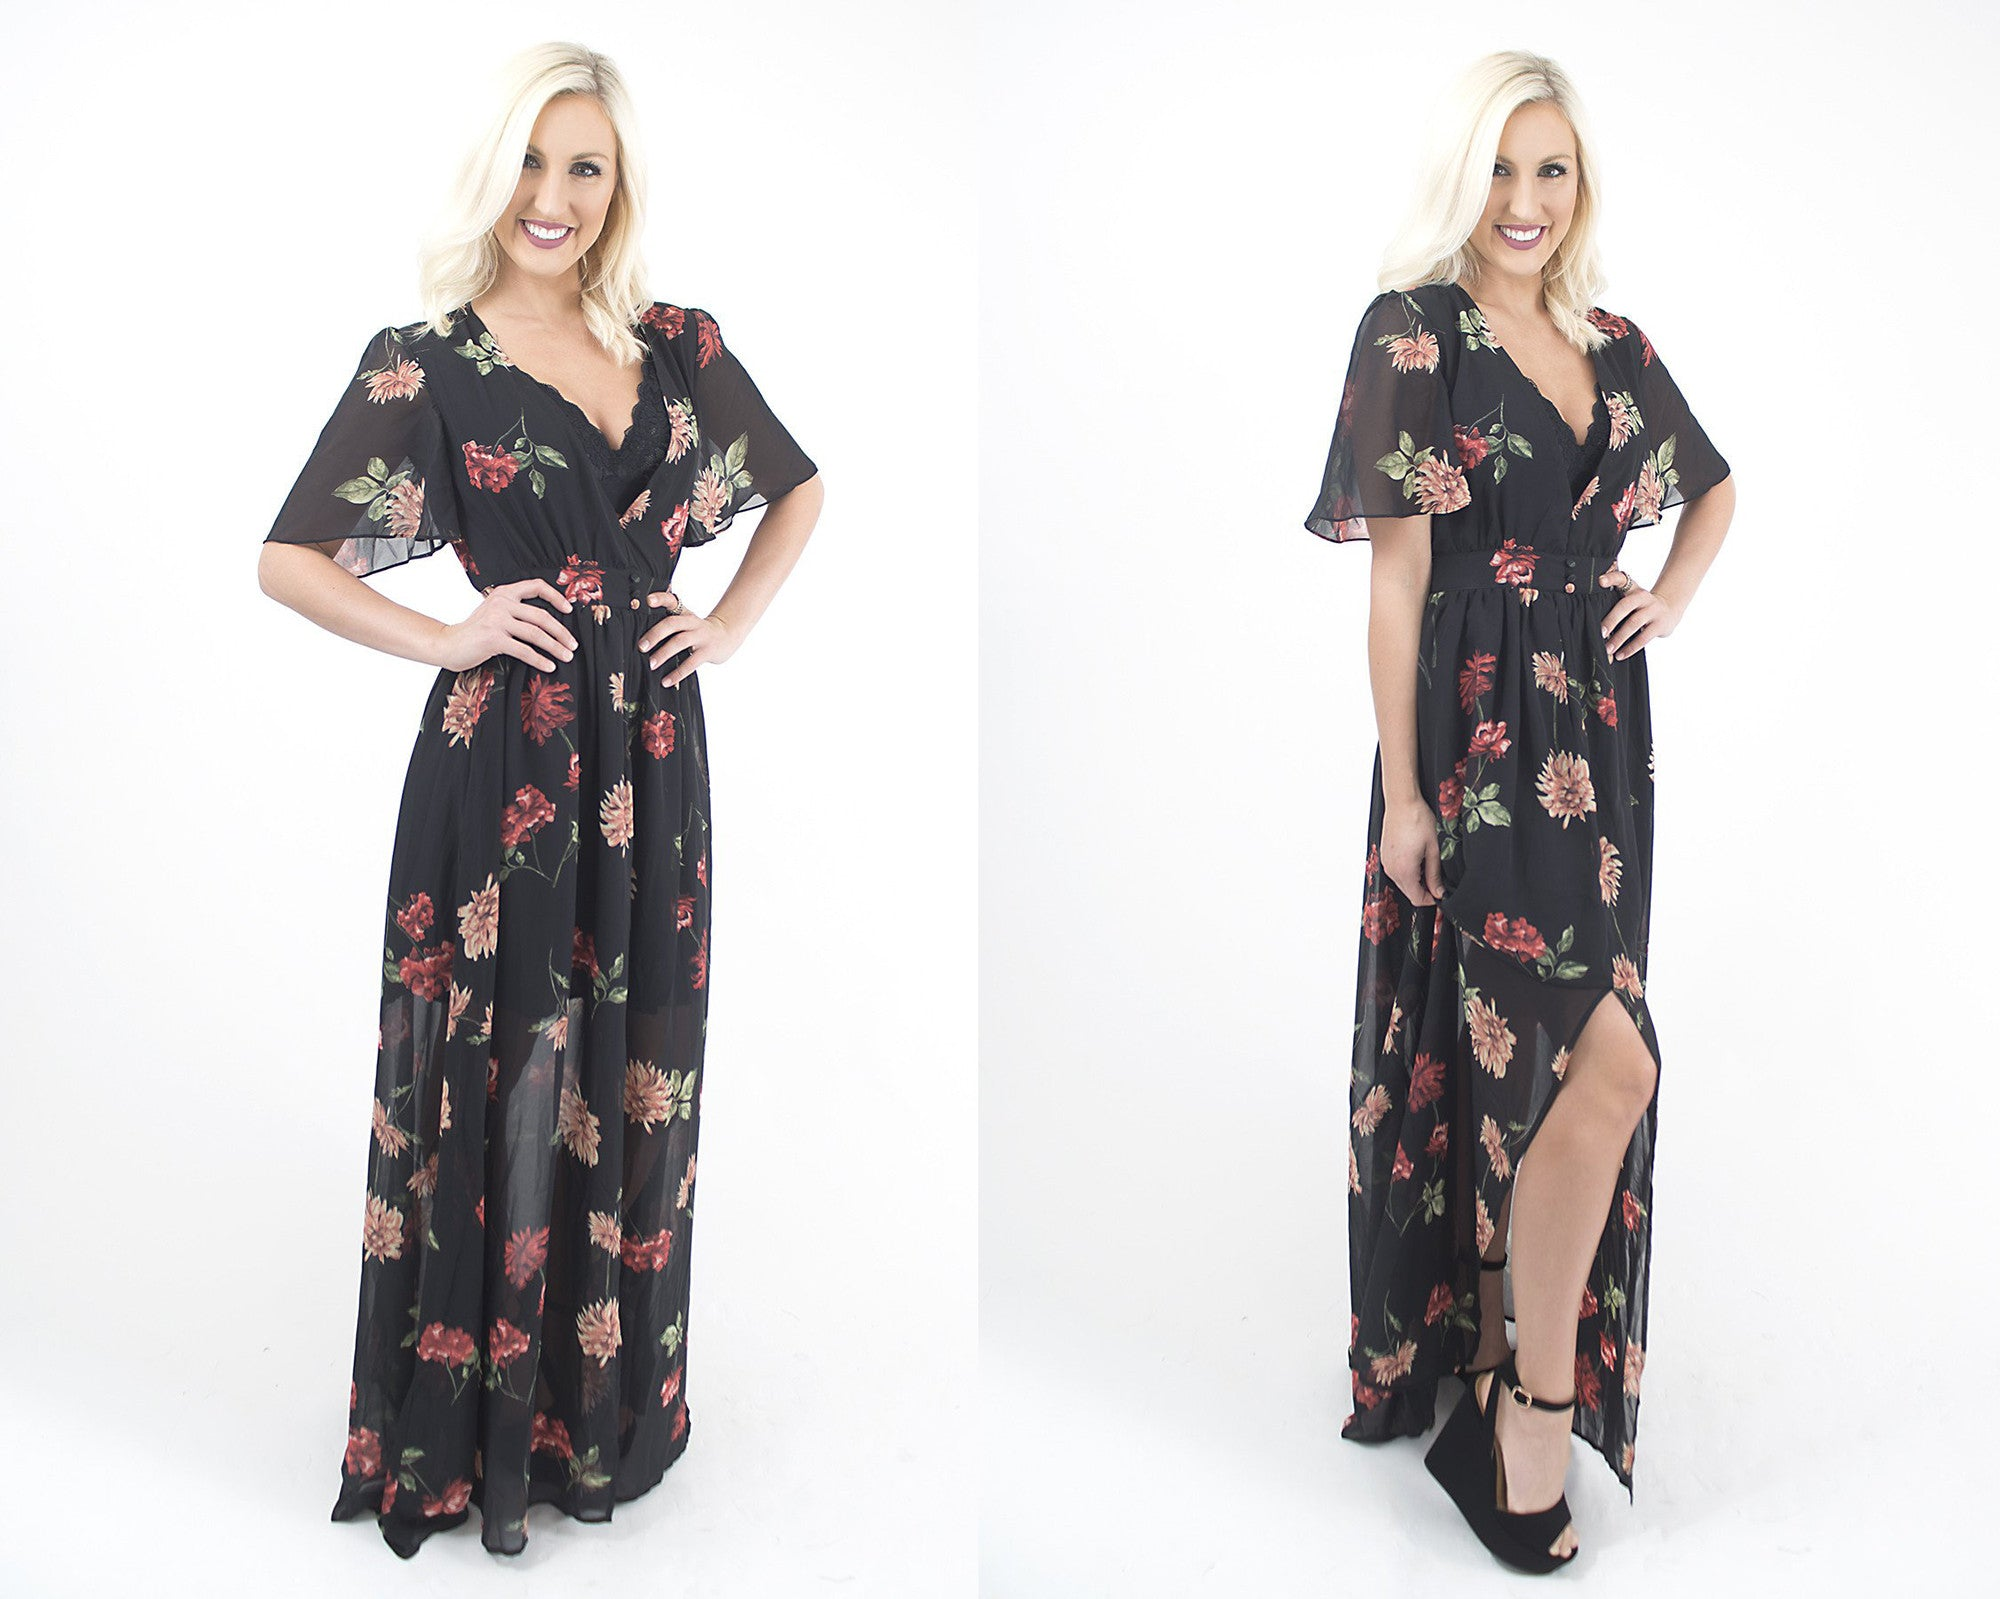 Women's floral maxi dress at Eccentrics boutique. Affordable women's clothing boutique.